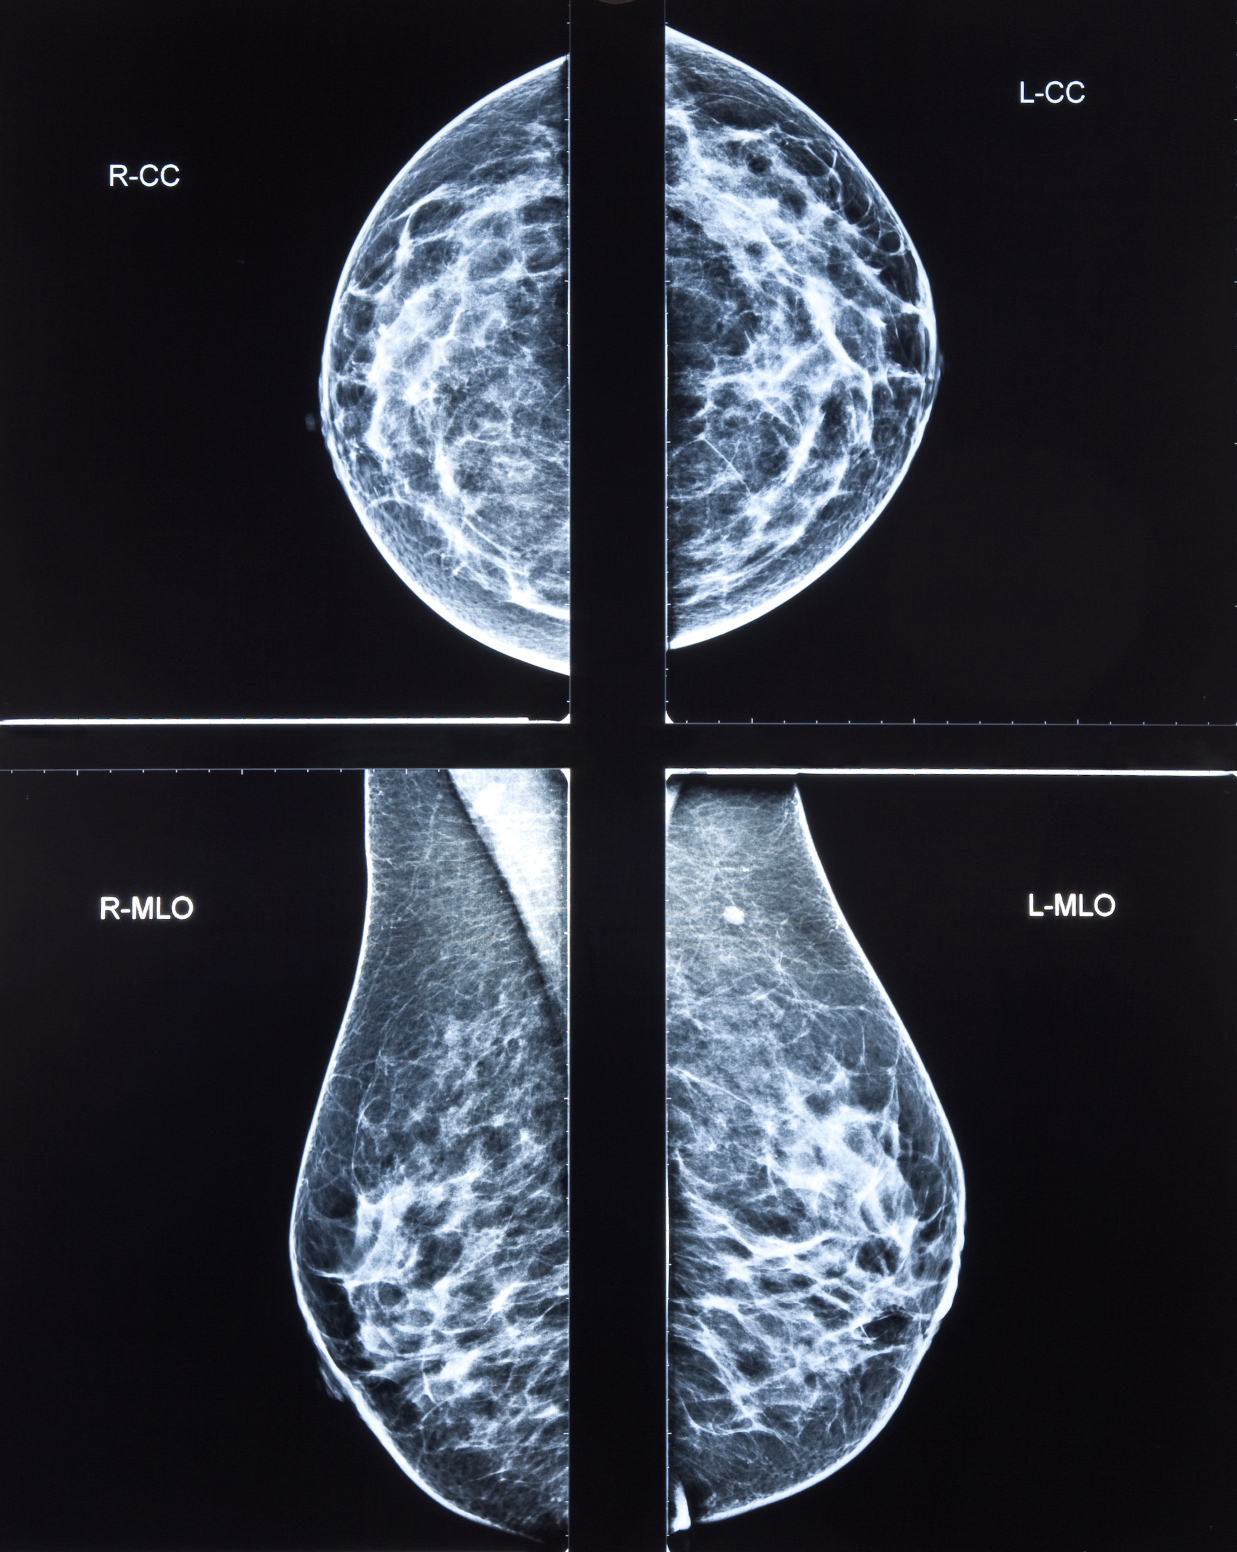 tomosynthesis for breast imaging Mammography is an effective imaging tool for detecting breast cancer at an early stage and is the only screening modality proved to reduce mortality from breast cancer.